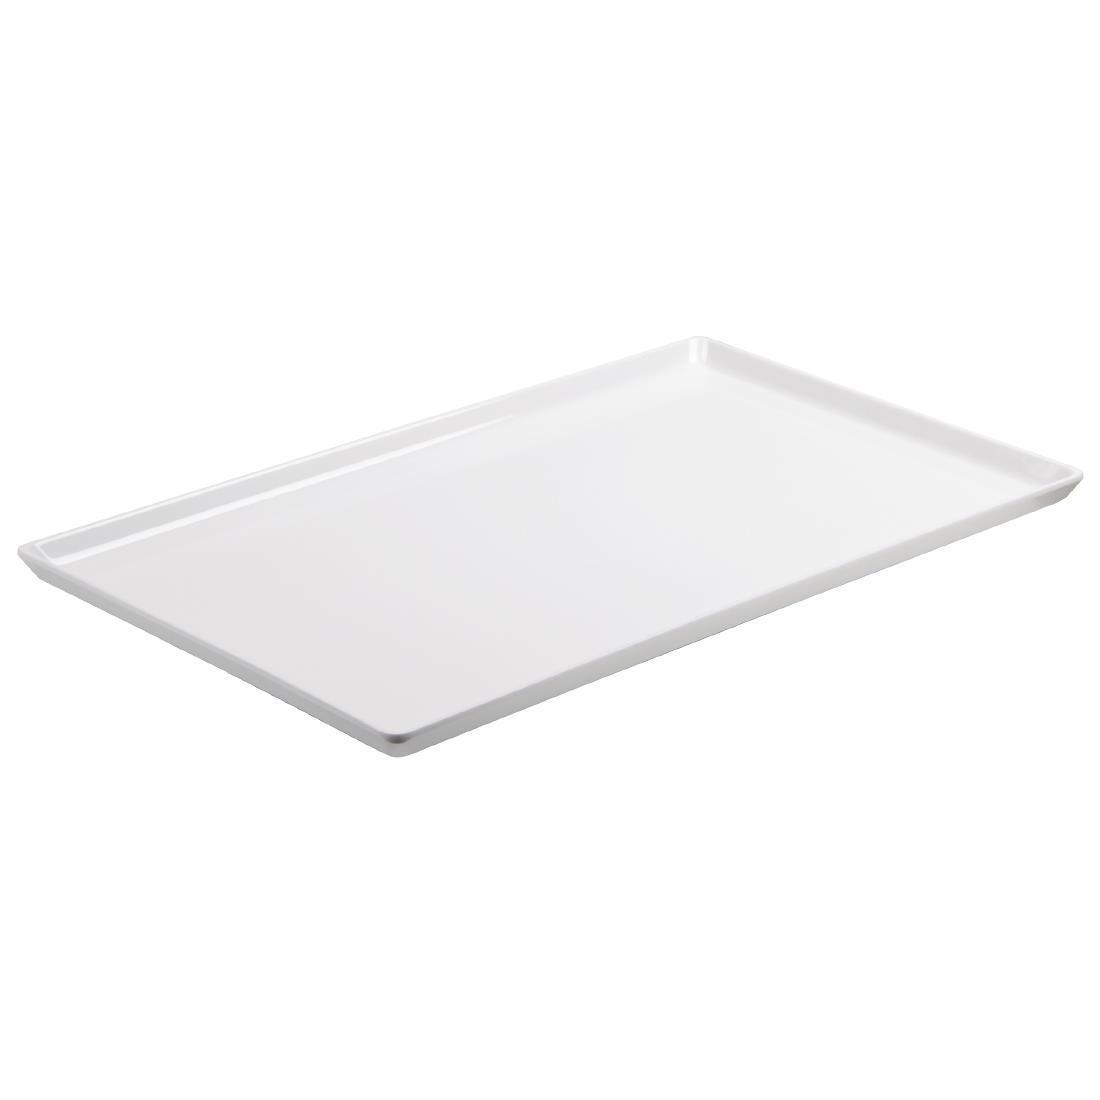 APS Float Melamine Tray White GN 1/2 - Each - GF076